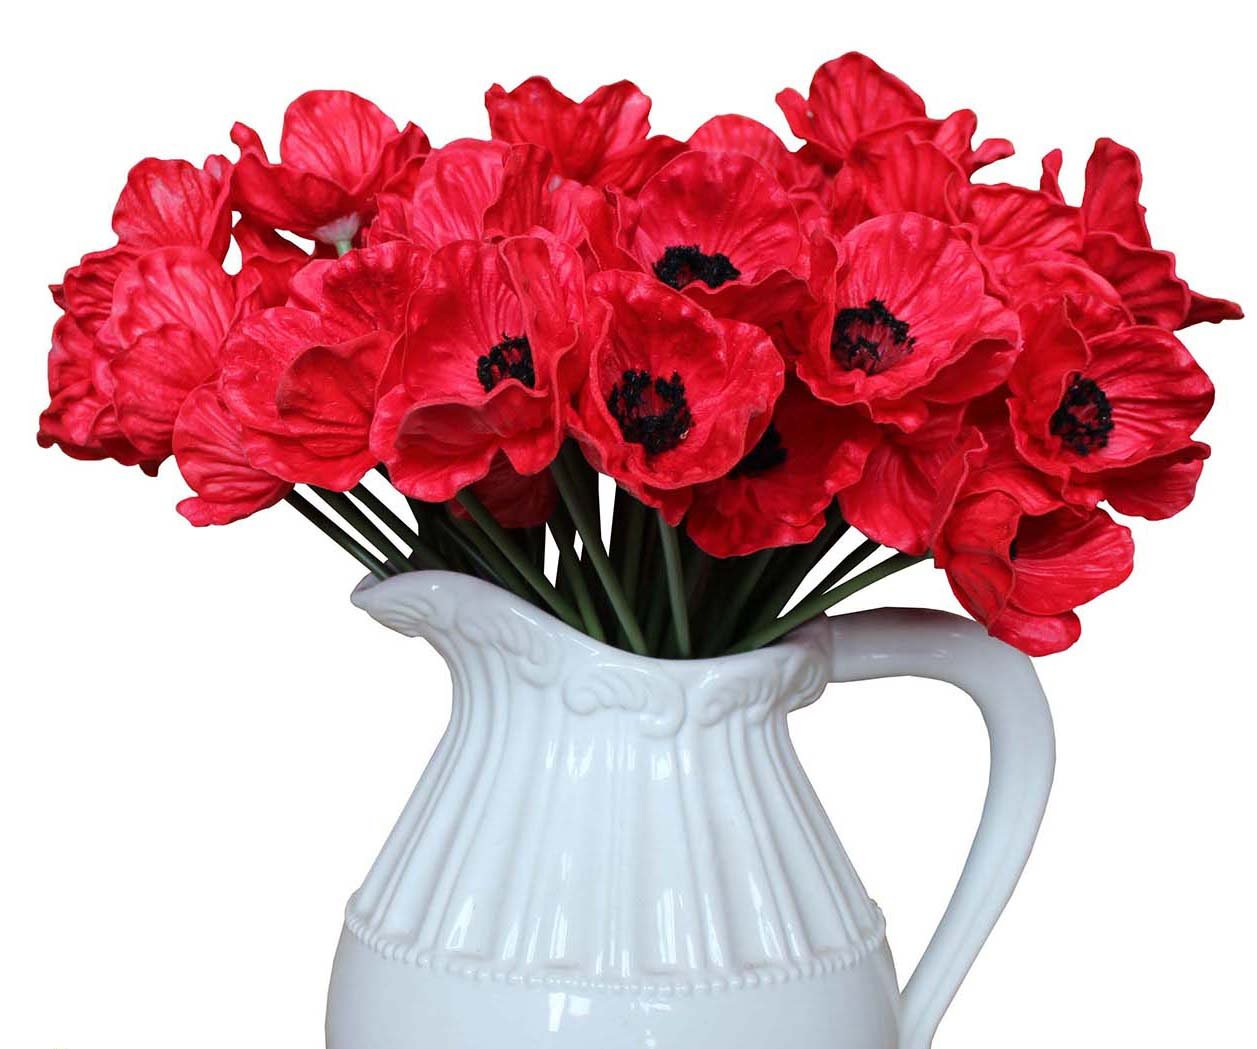 silk flower arrangements en ge 10 stems mini artificial poppies real touch fake latex flowers for bridal wedding bouquet home kitchen desktop party christmas thanksgiving decor (red)